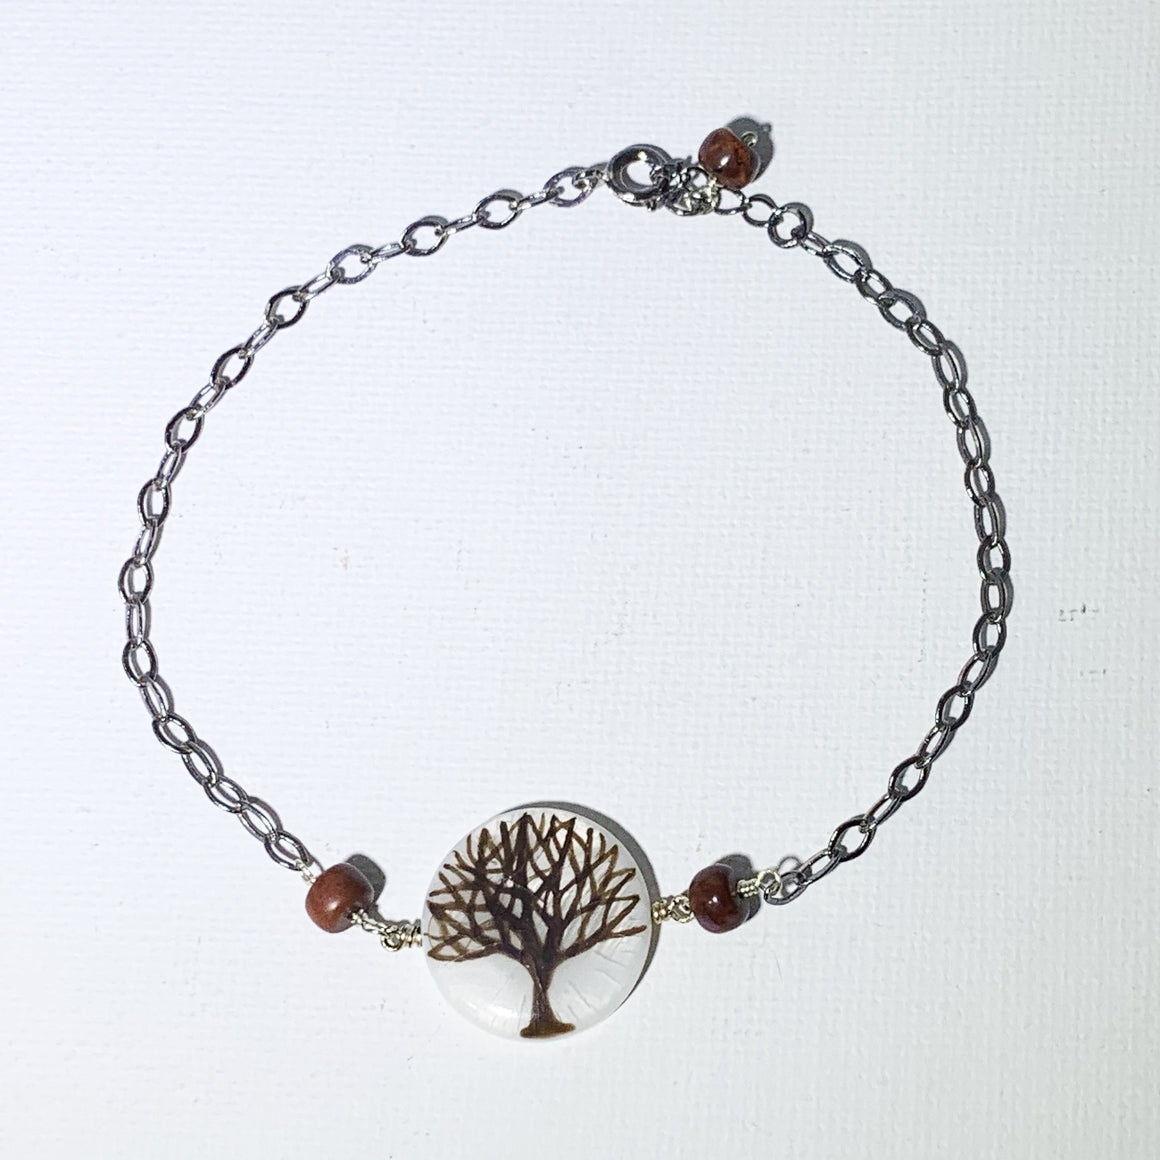 Painted Tree Bracelet/Anklet